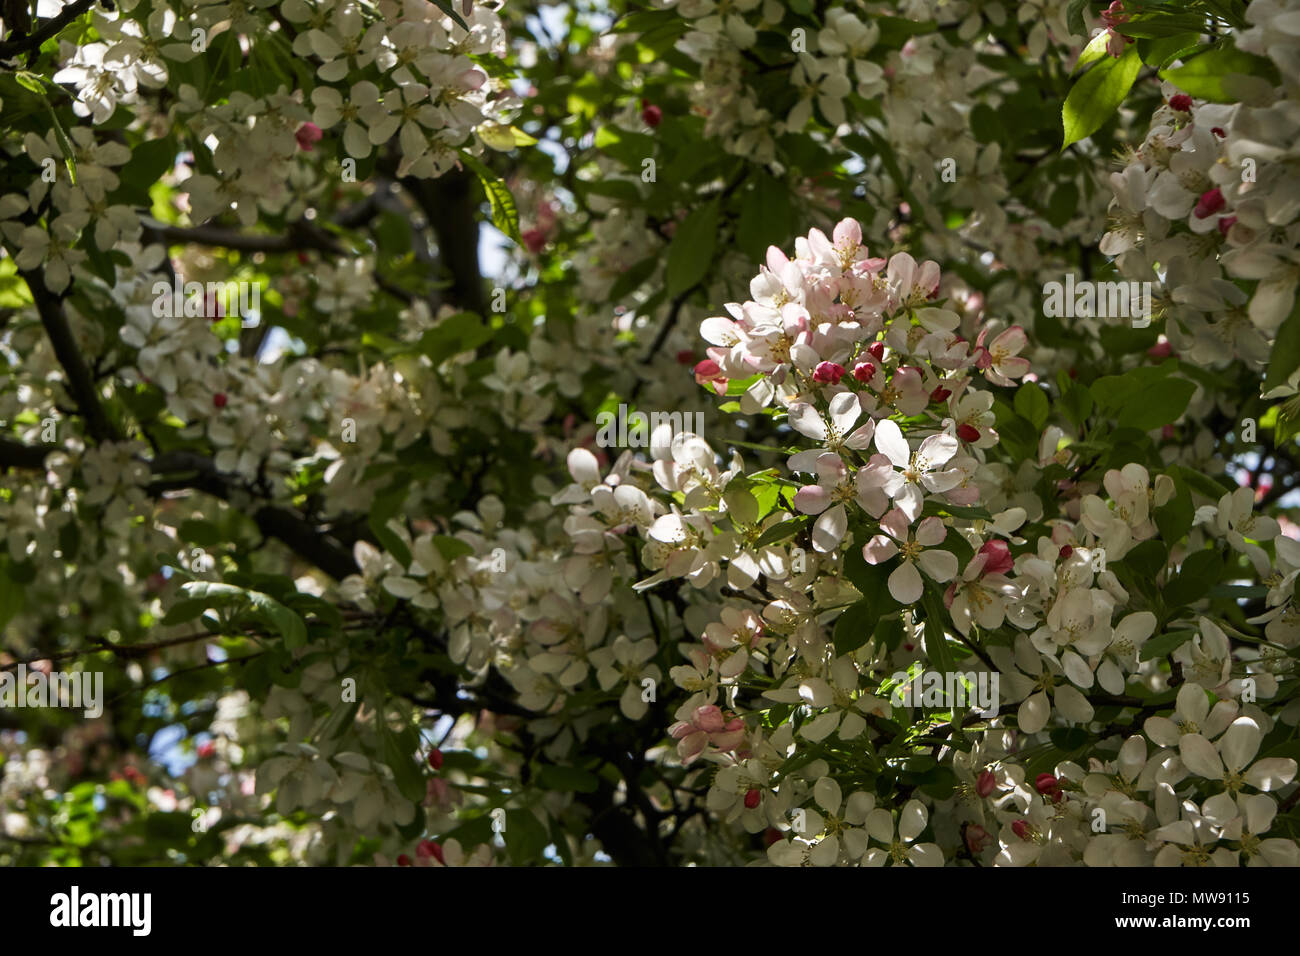 Dainty Pink Flowers Stock Photos Dainty Pink Flowers Stock Images